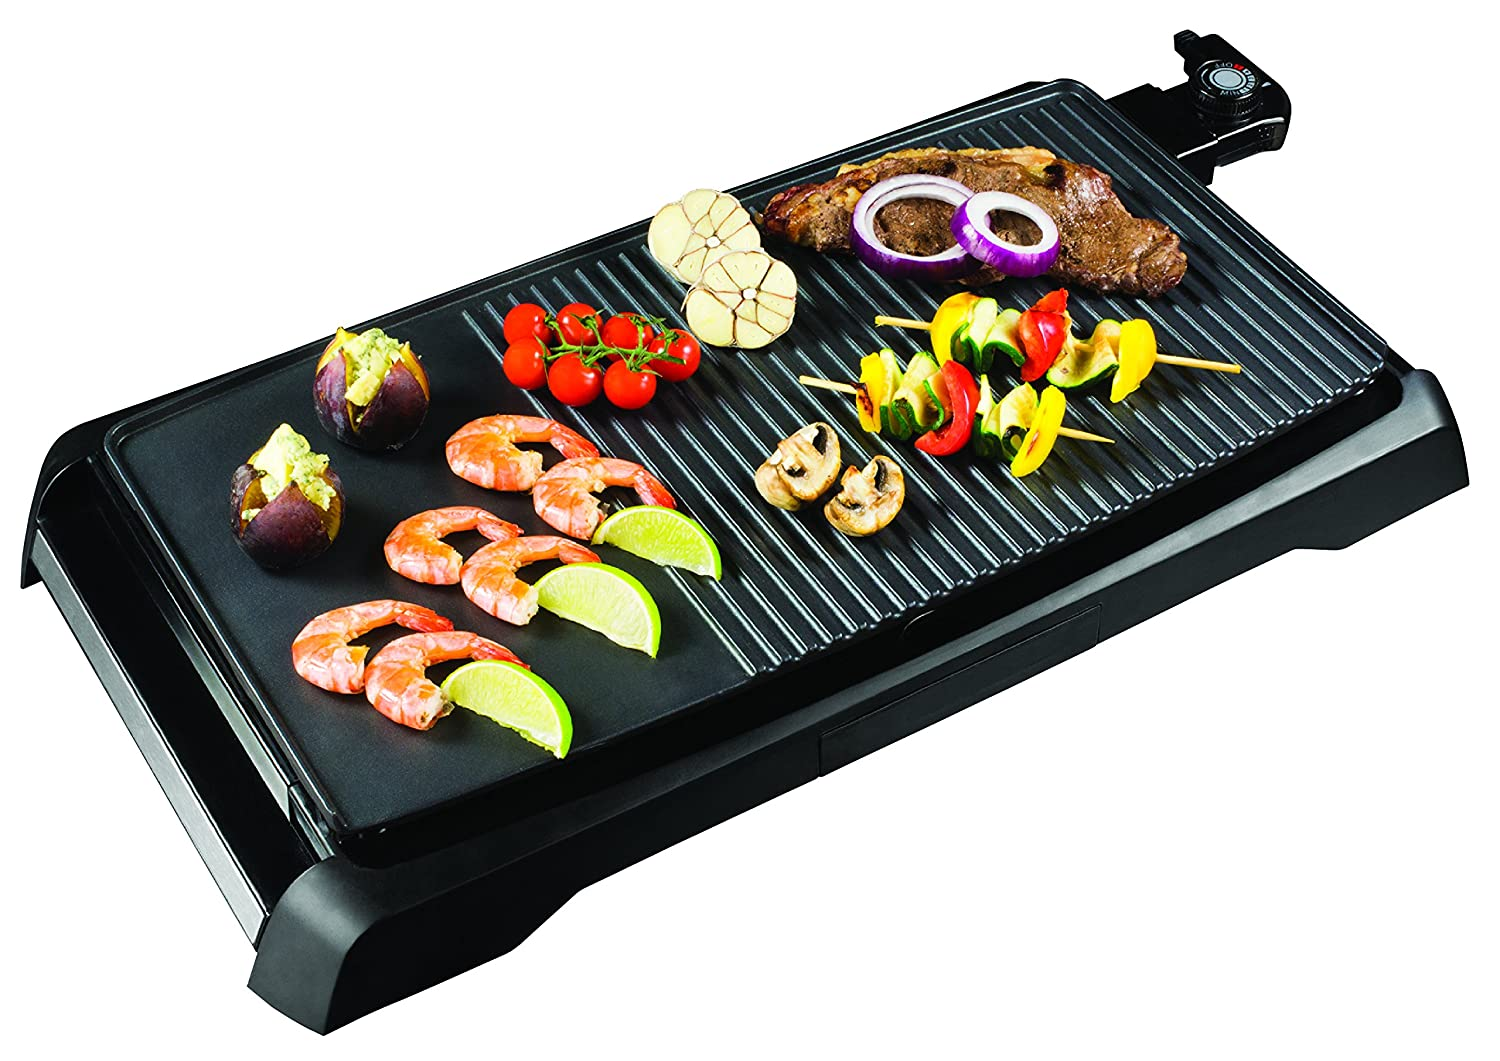 Health and Home 21Inch Nonstick Electric Griddle